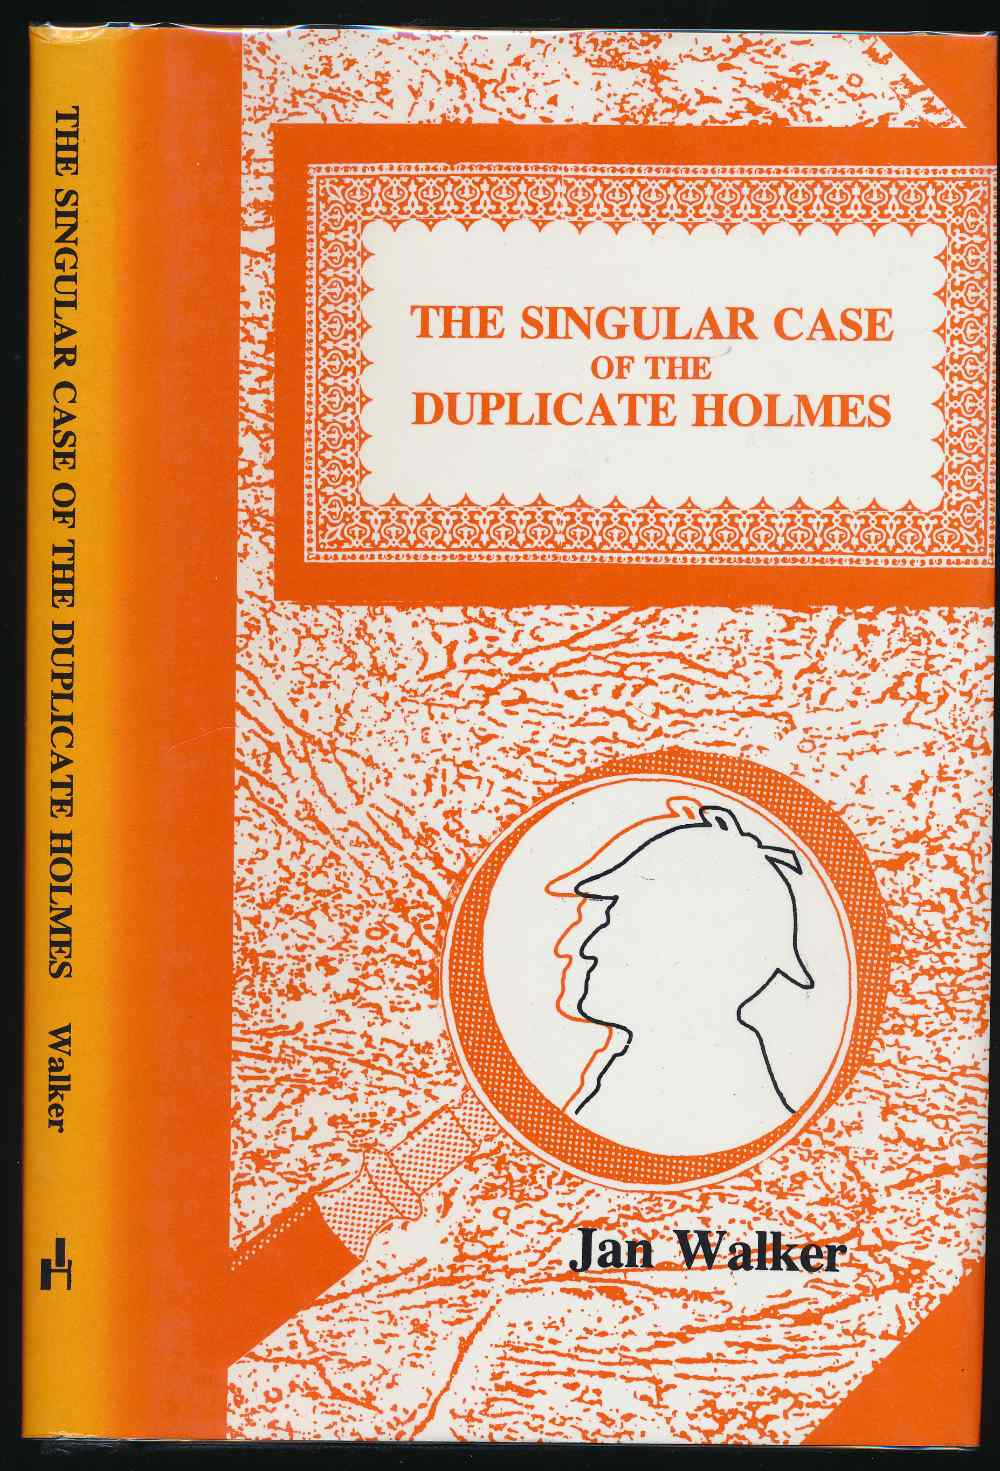 The singular case of the duplicate Holmes